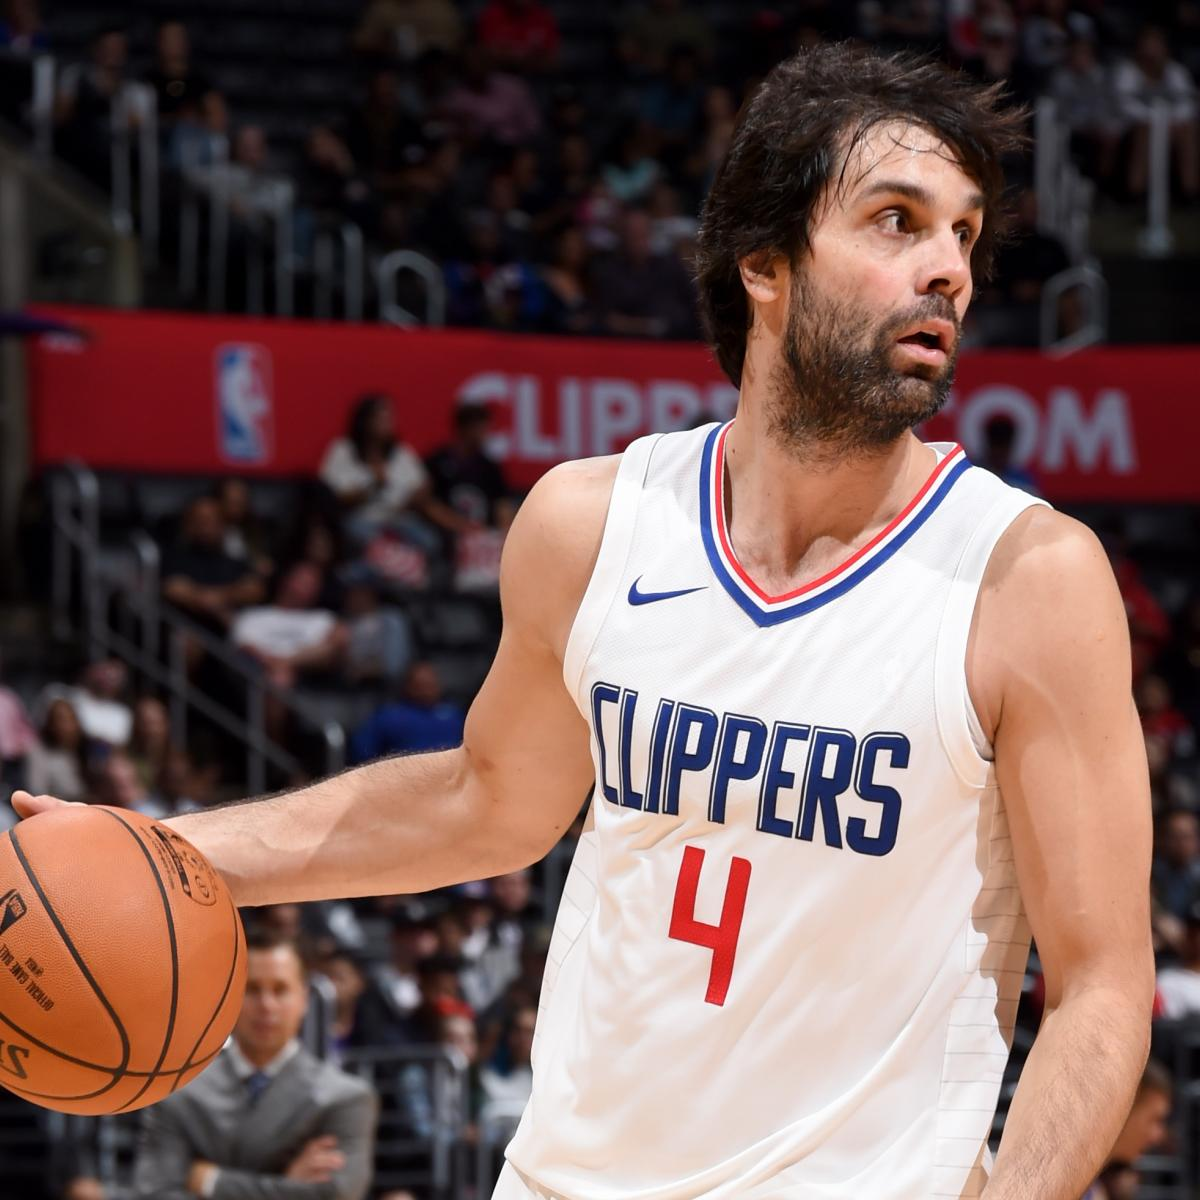 Indefinitely Reportedly Clippers